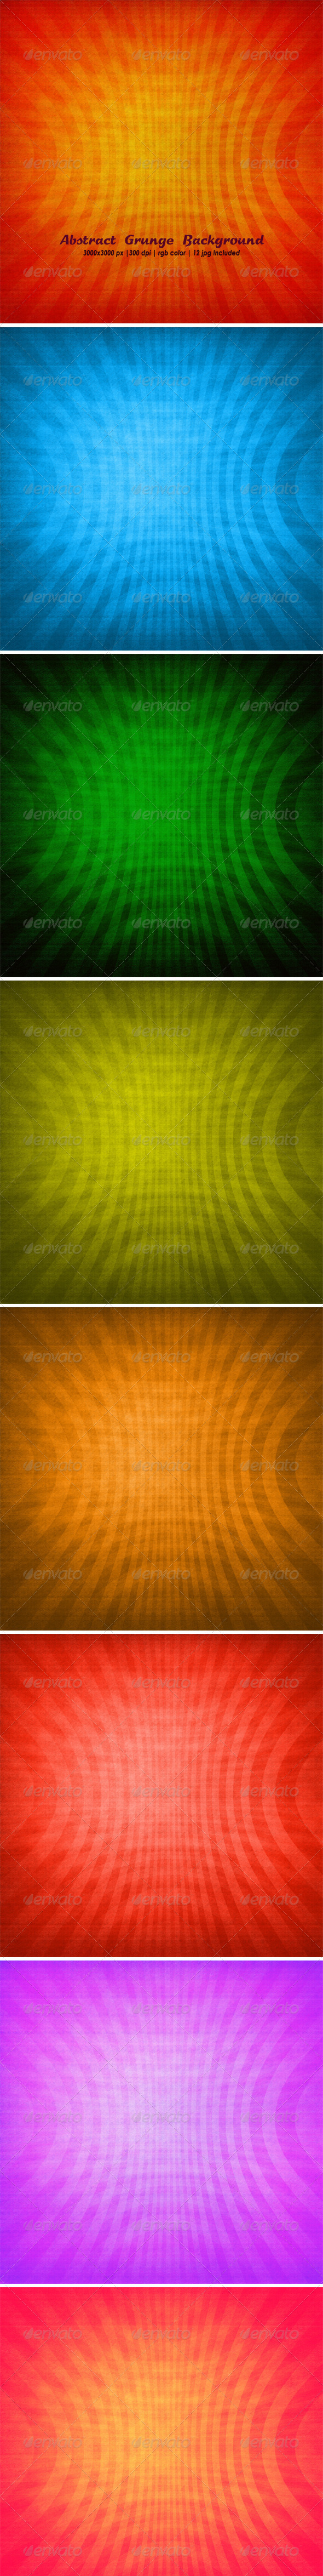 GraphicRiver Abstract Grunge Background Set 4876301